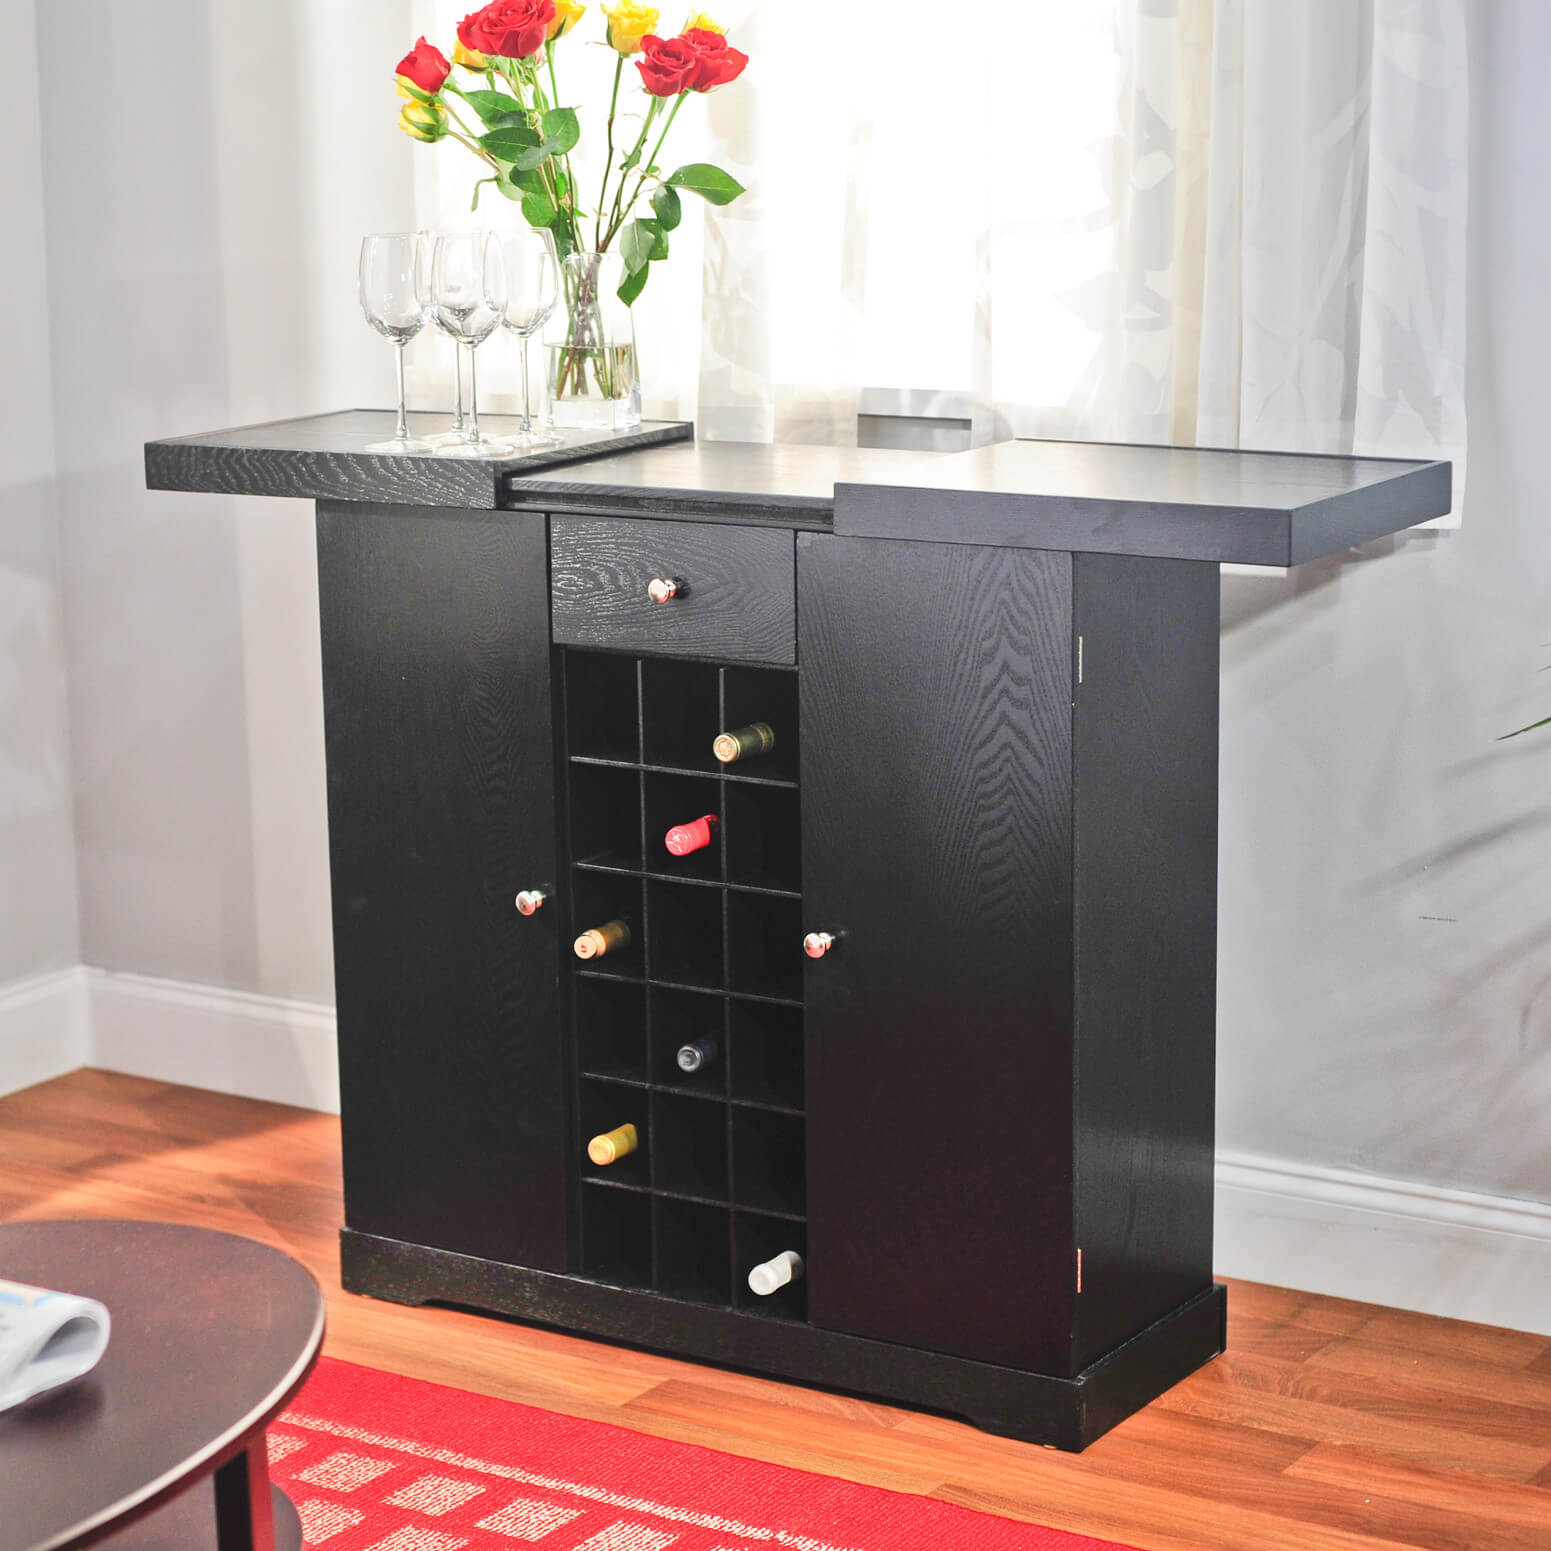 This is a classic cabinet instead of a bar. We included it in this gallery because of it's unique symmetrical, clean lines design.